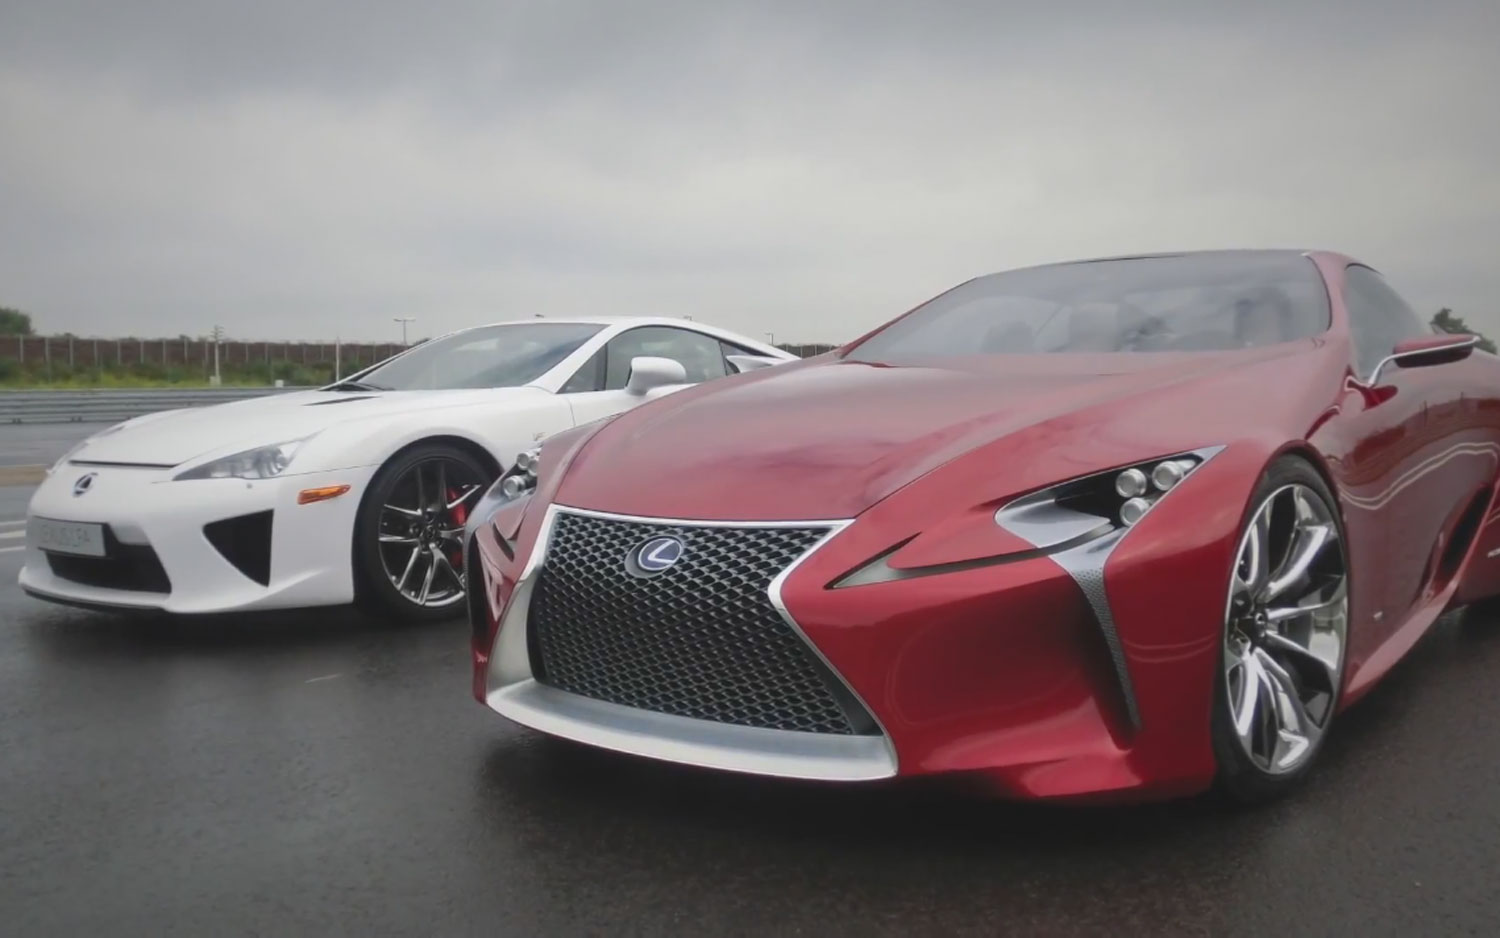 feature flick: lexus lf-lc concept steals show from lfa supercar